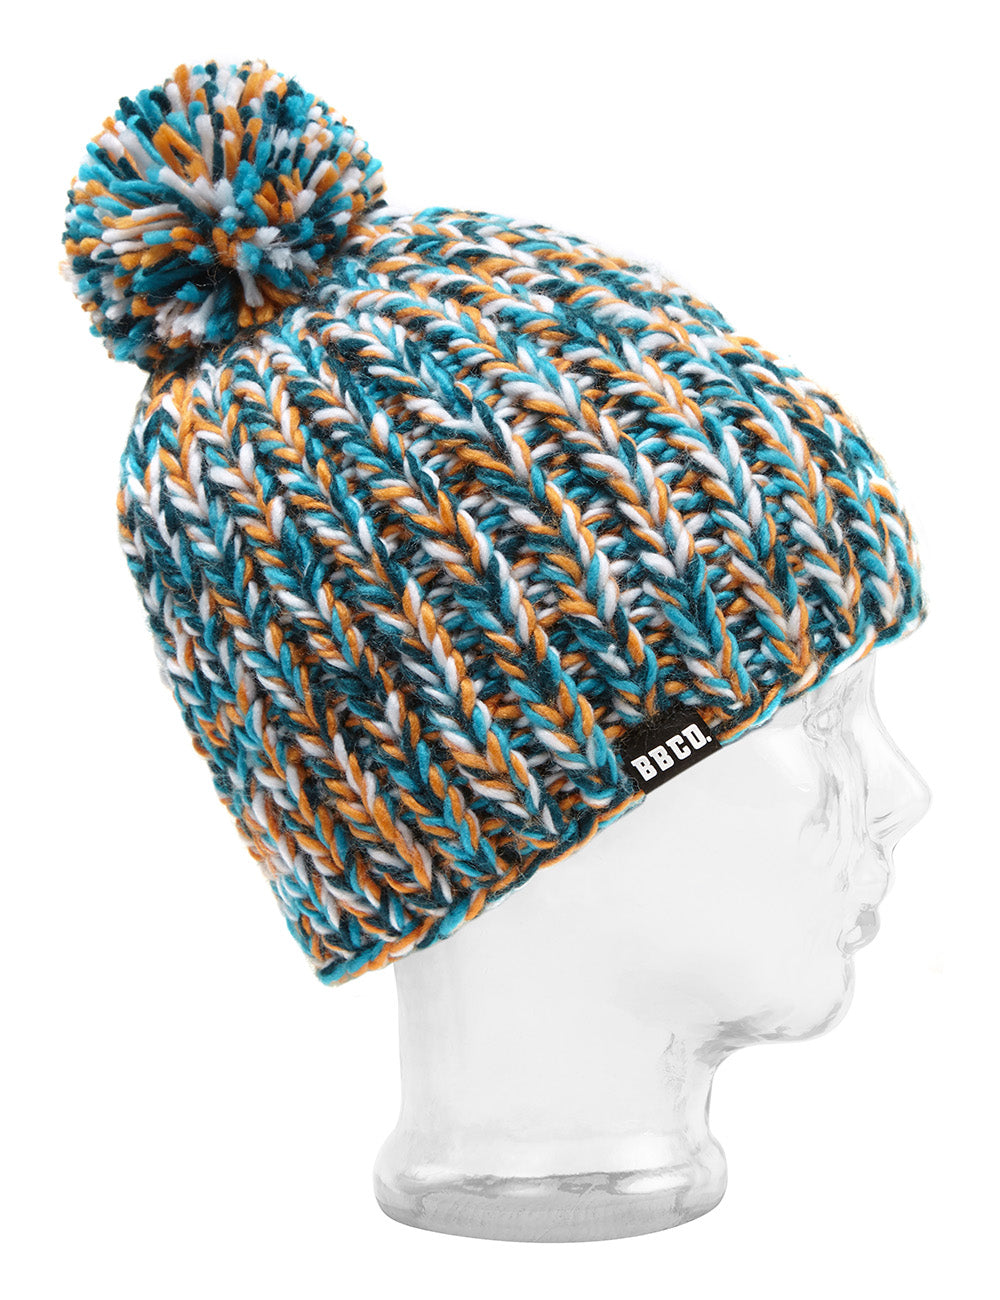 Tide Teller Beanie - Multi Colour  a6419cab821